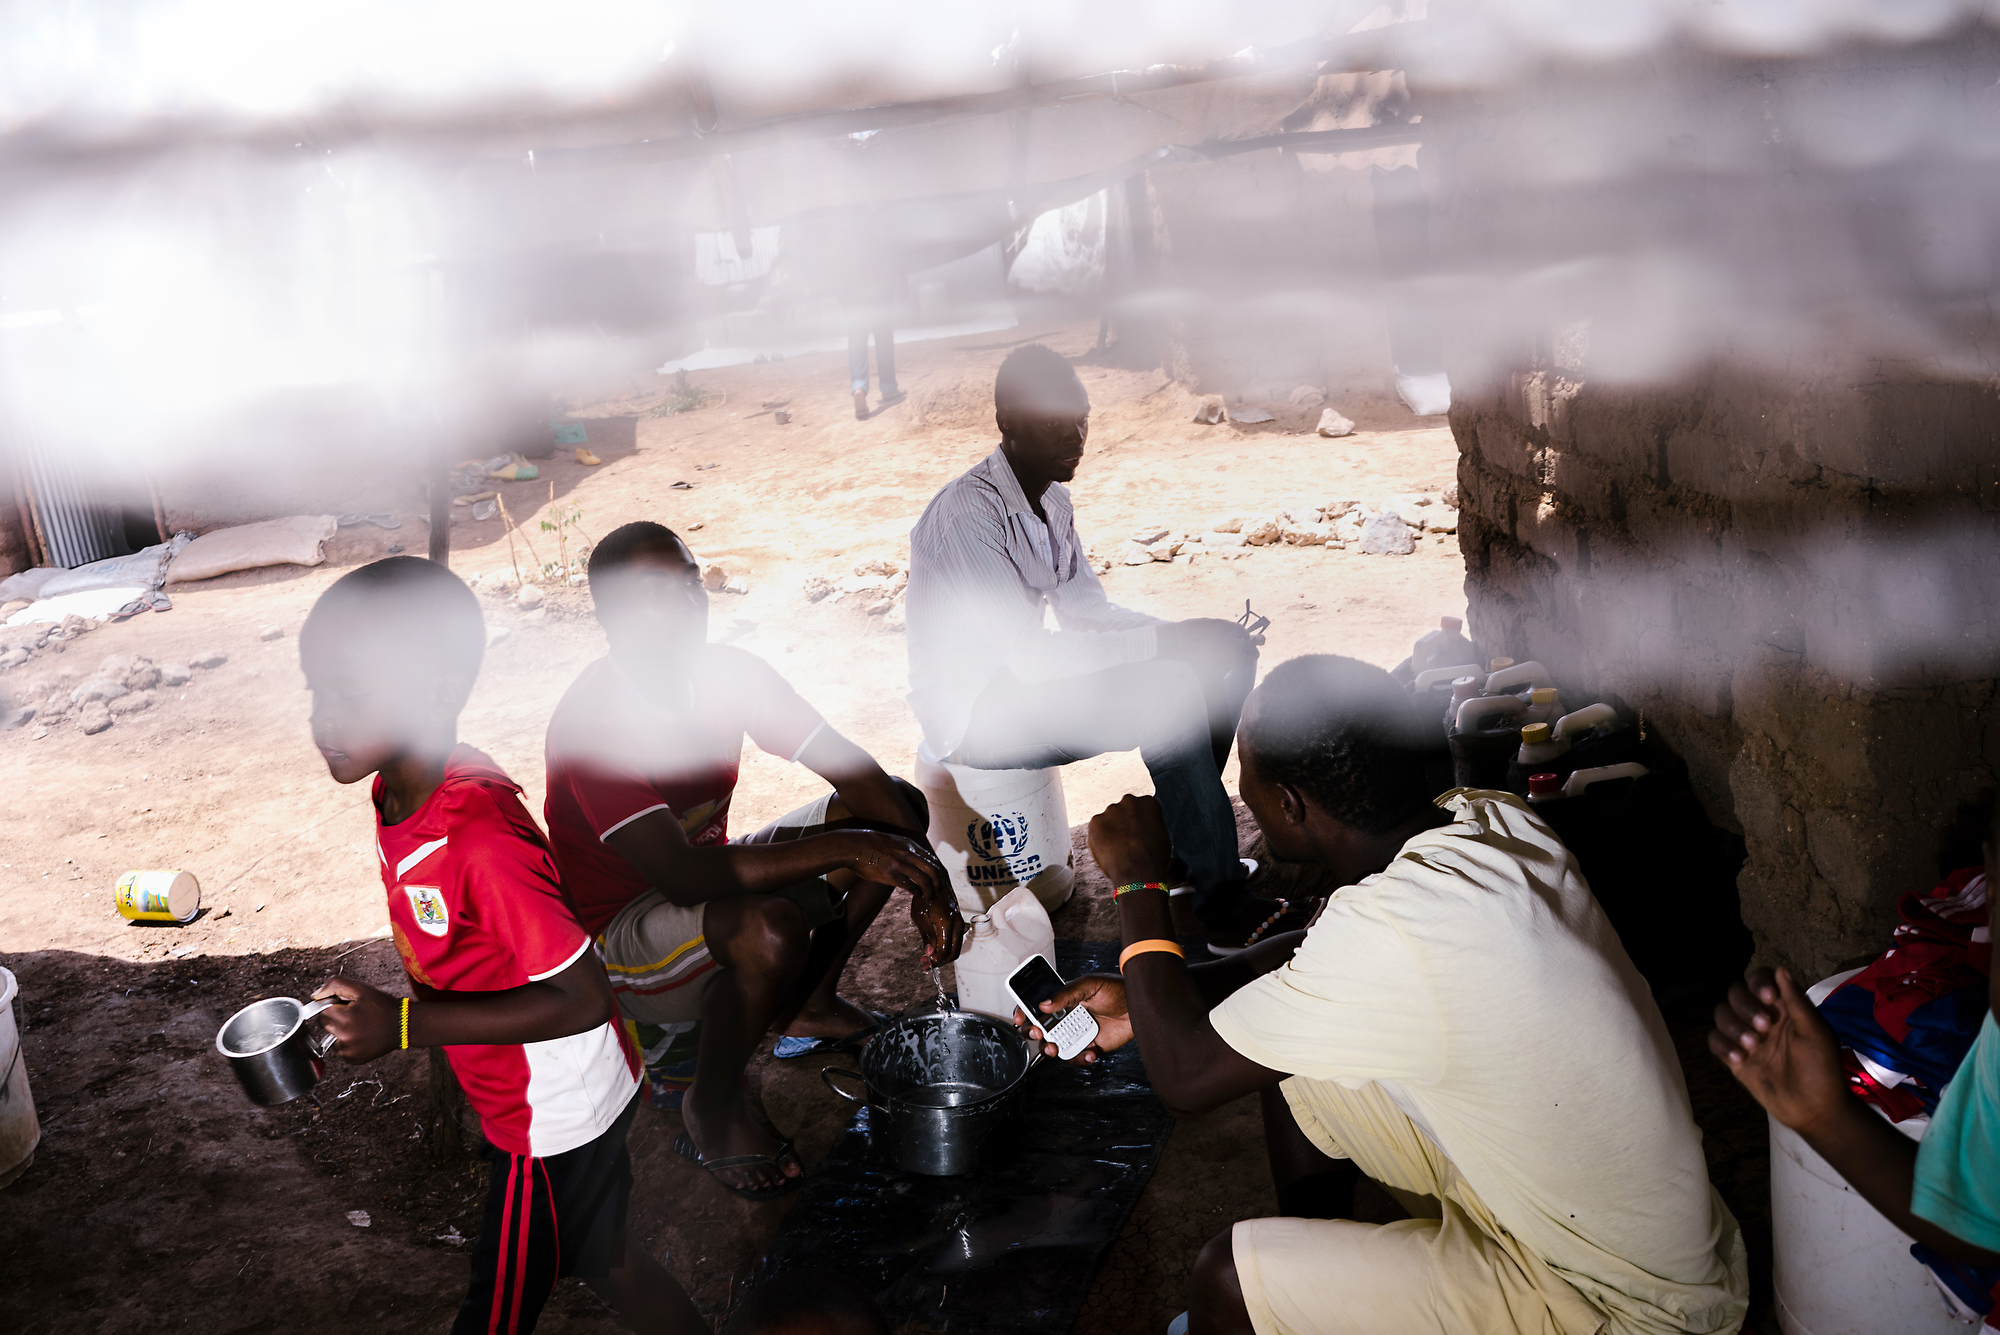 The Ugandans gather in one of the LGBT compounds. Much of the Kakuma refugee camp is unsafe for the LGBT refugees to walk around. The UN placed them in a special compound for their safety, but it means they spend most of their time cooped up in a small space.